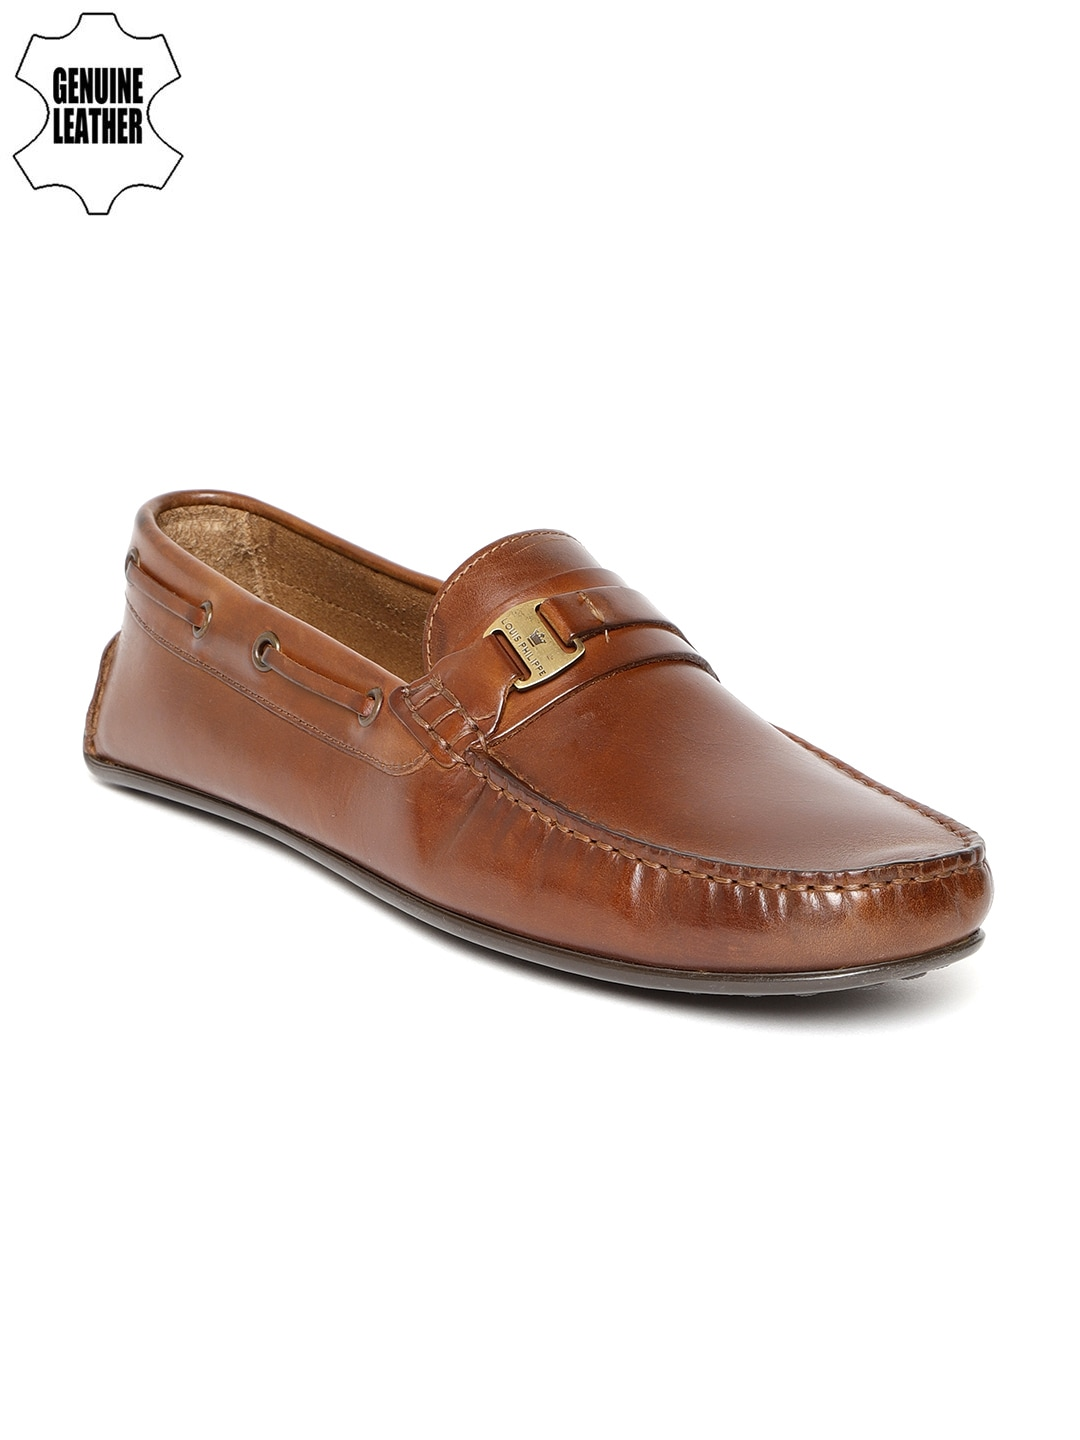 780e7ed8b9f Louis Philippe Loafers Shoes - Buy Louis Philippe Loafers Shoes online in  India